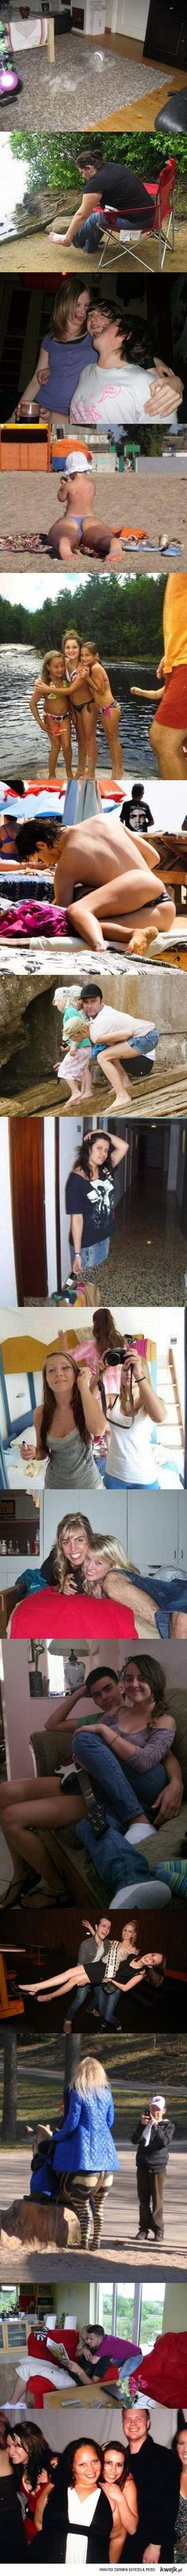 Now that's funny: Girl, Funny Pictures, Funnypictures, Facebook, Funny Stuff, Humor, Funnies